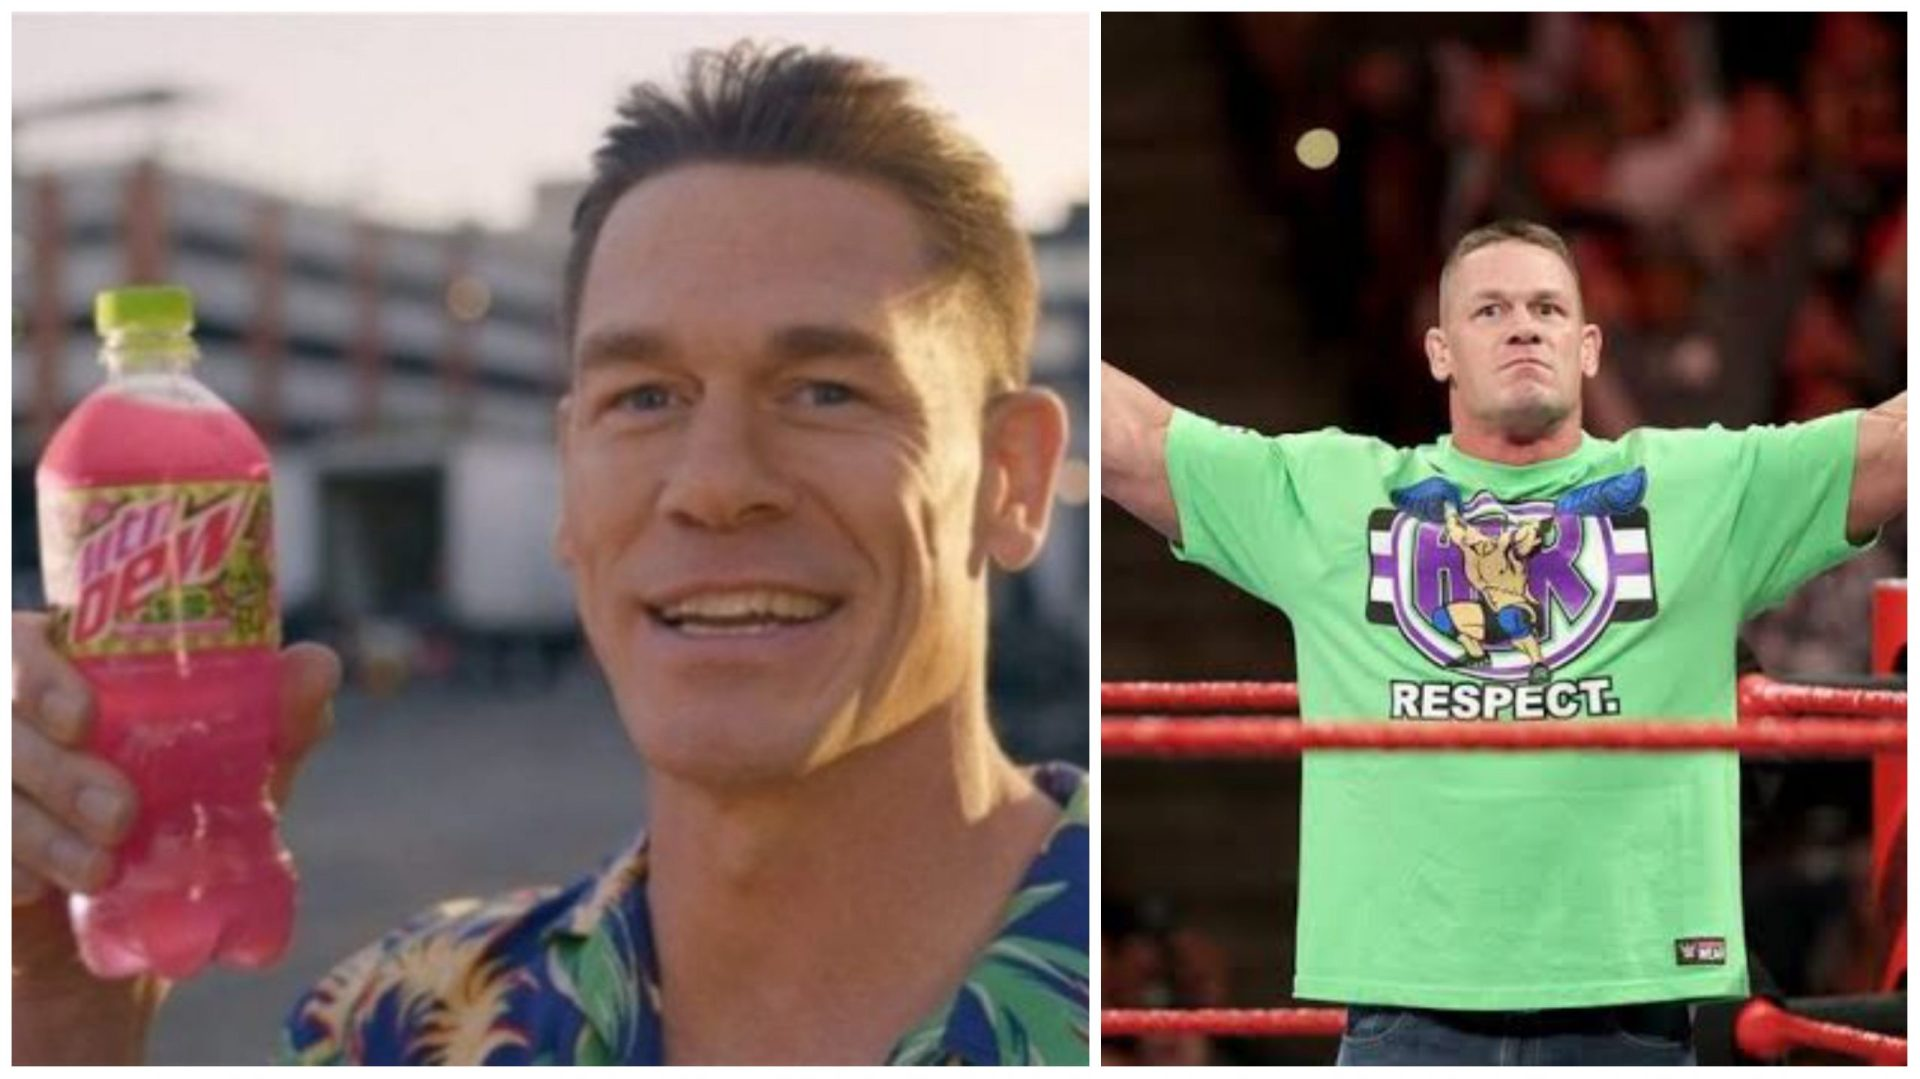 John Cena to appear in Mountain Dew Super Bowl commercial - THE SPORTS ROOM